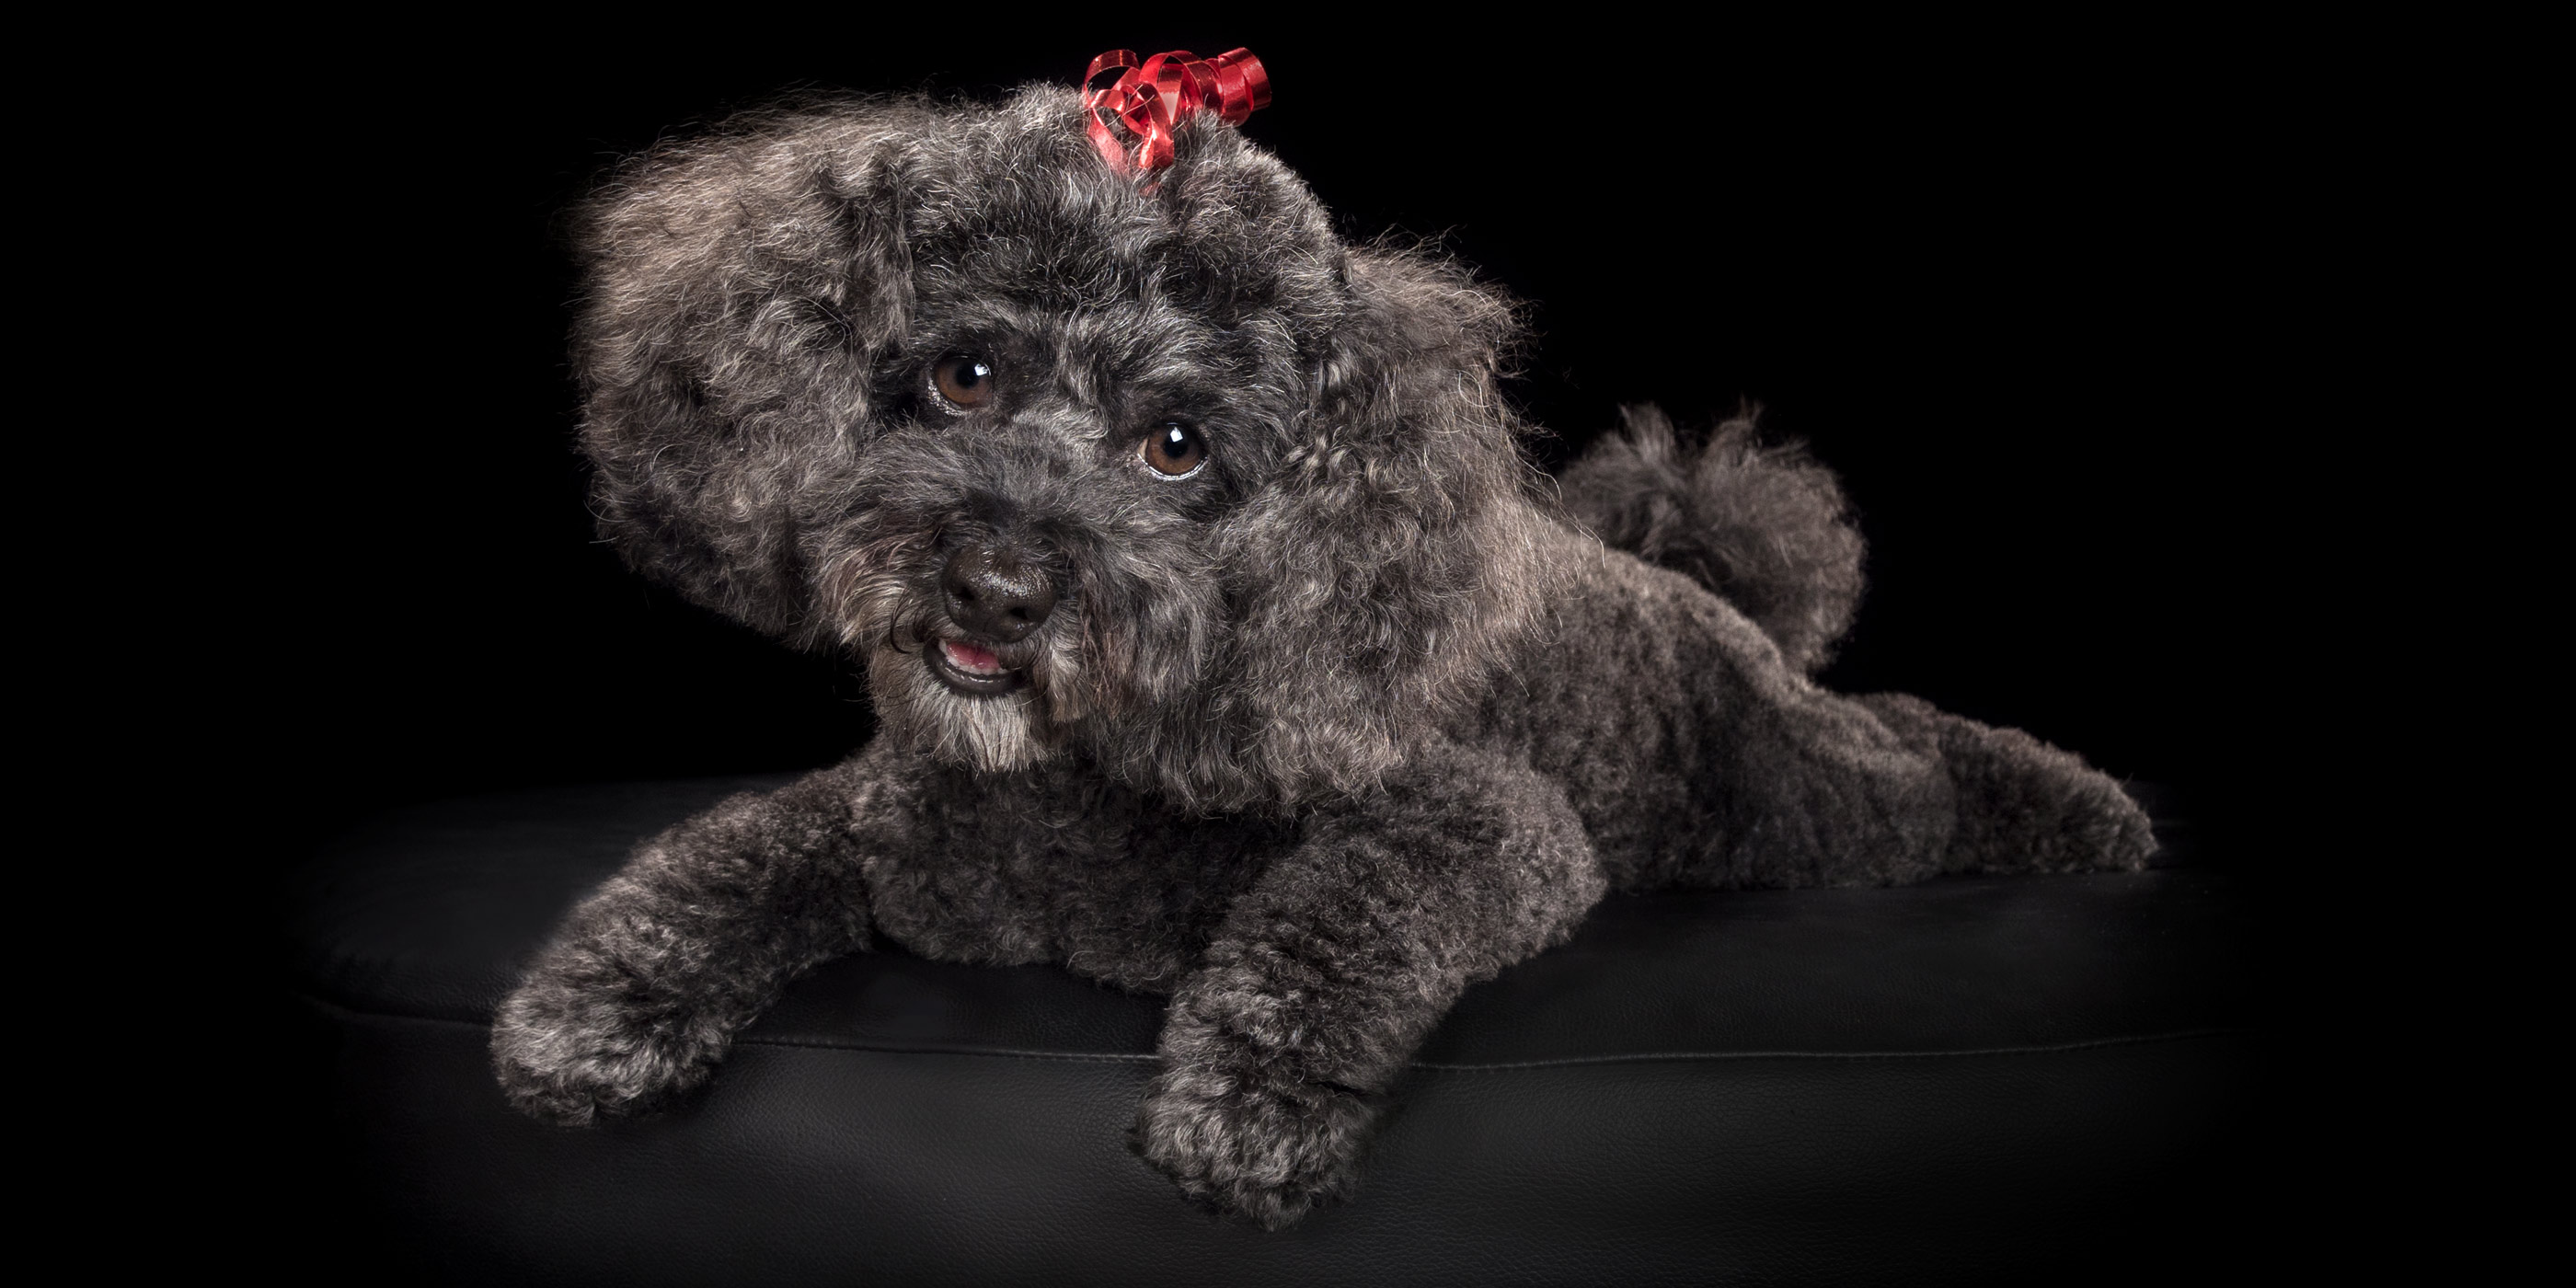 sweet faced fluffy black poodle cross